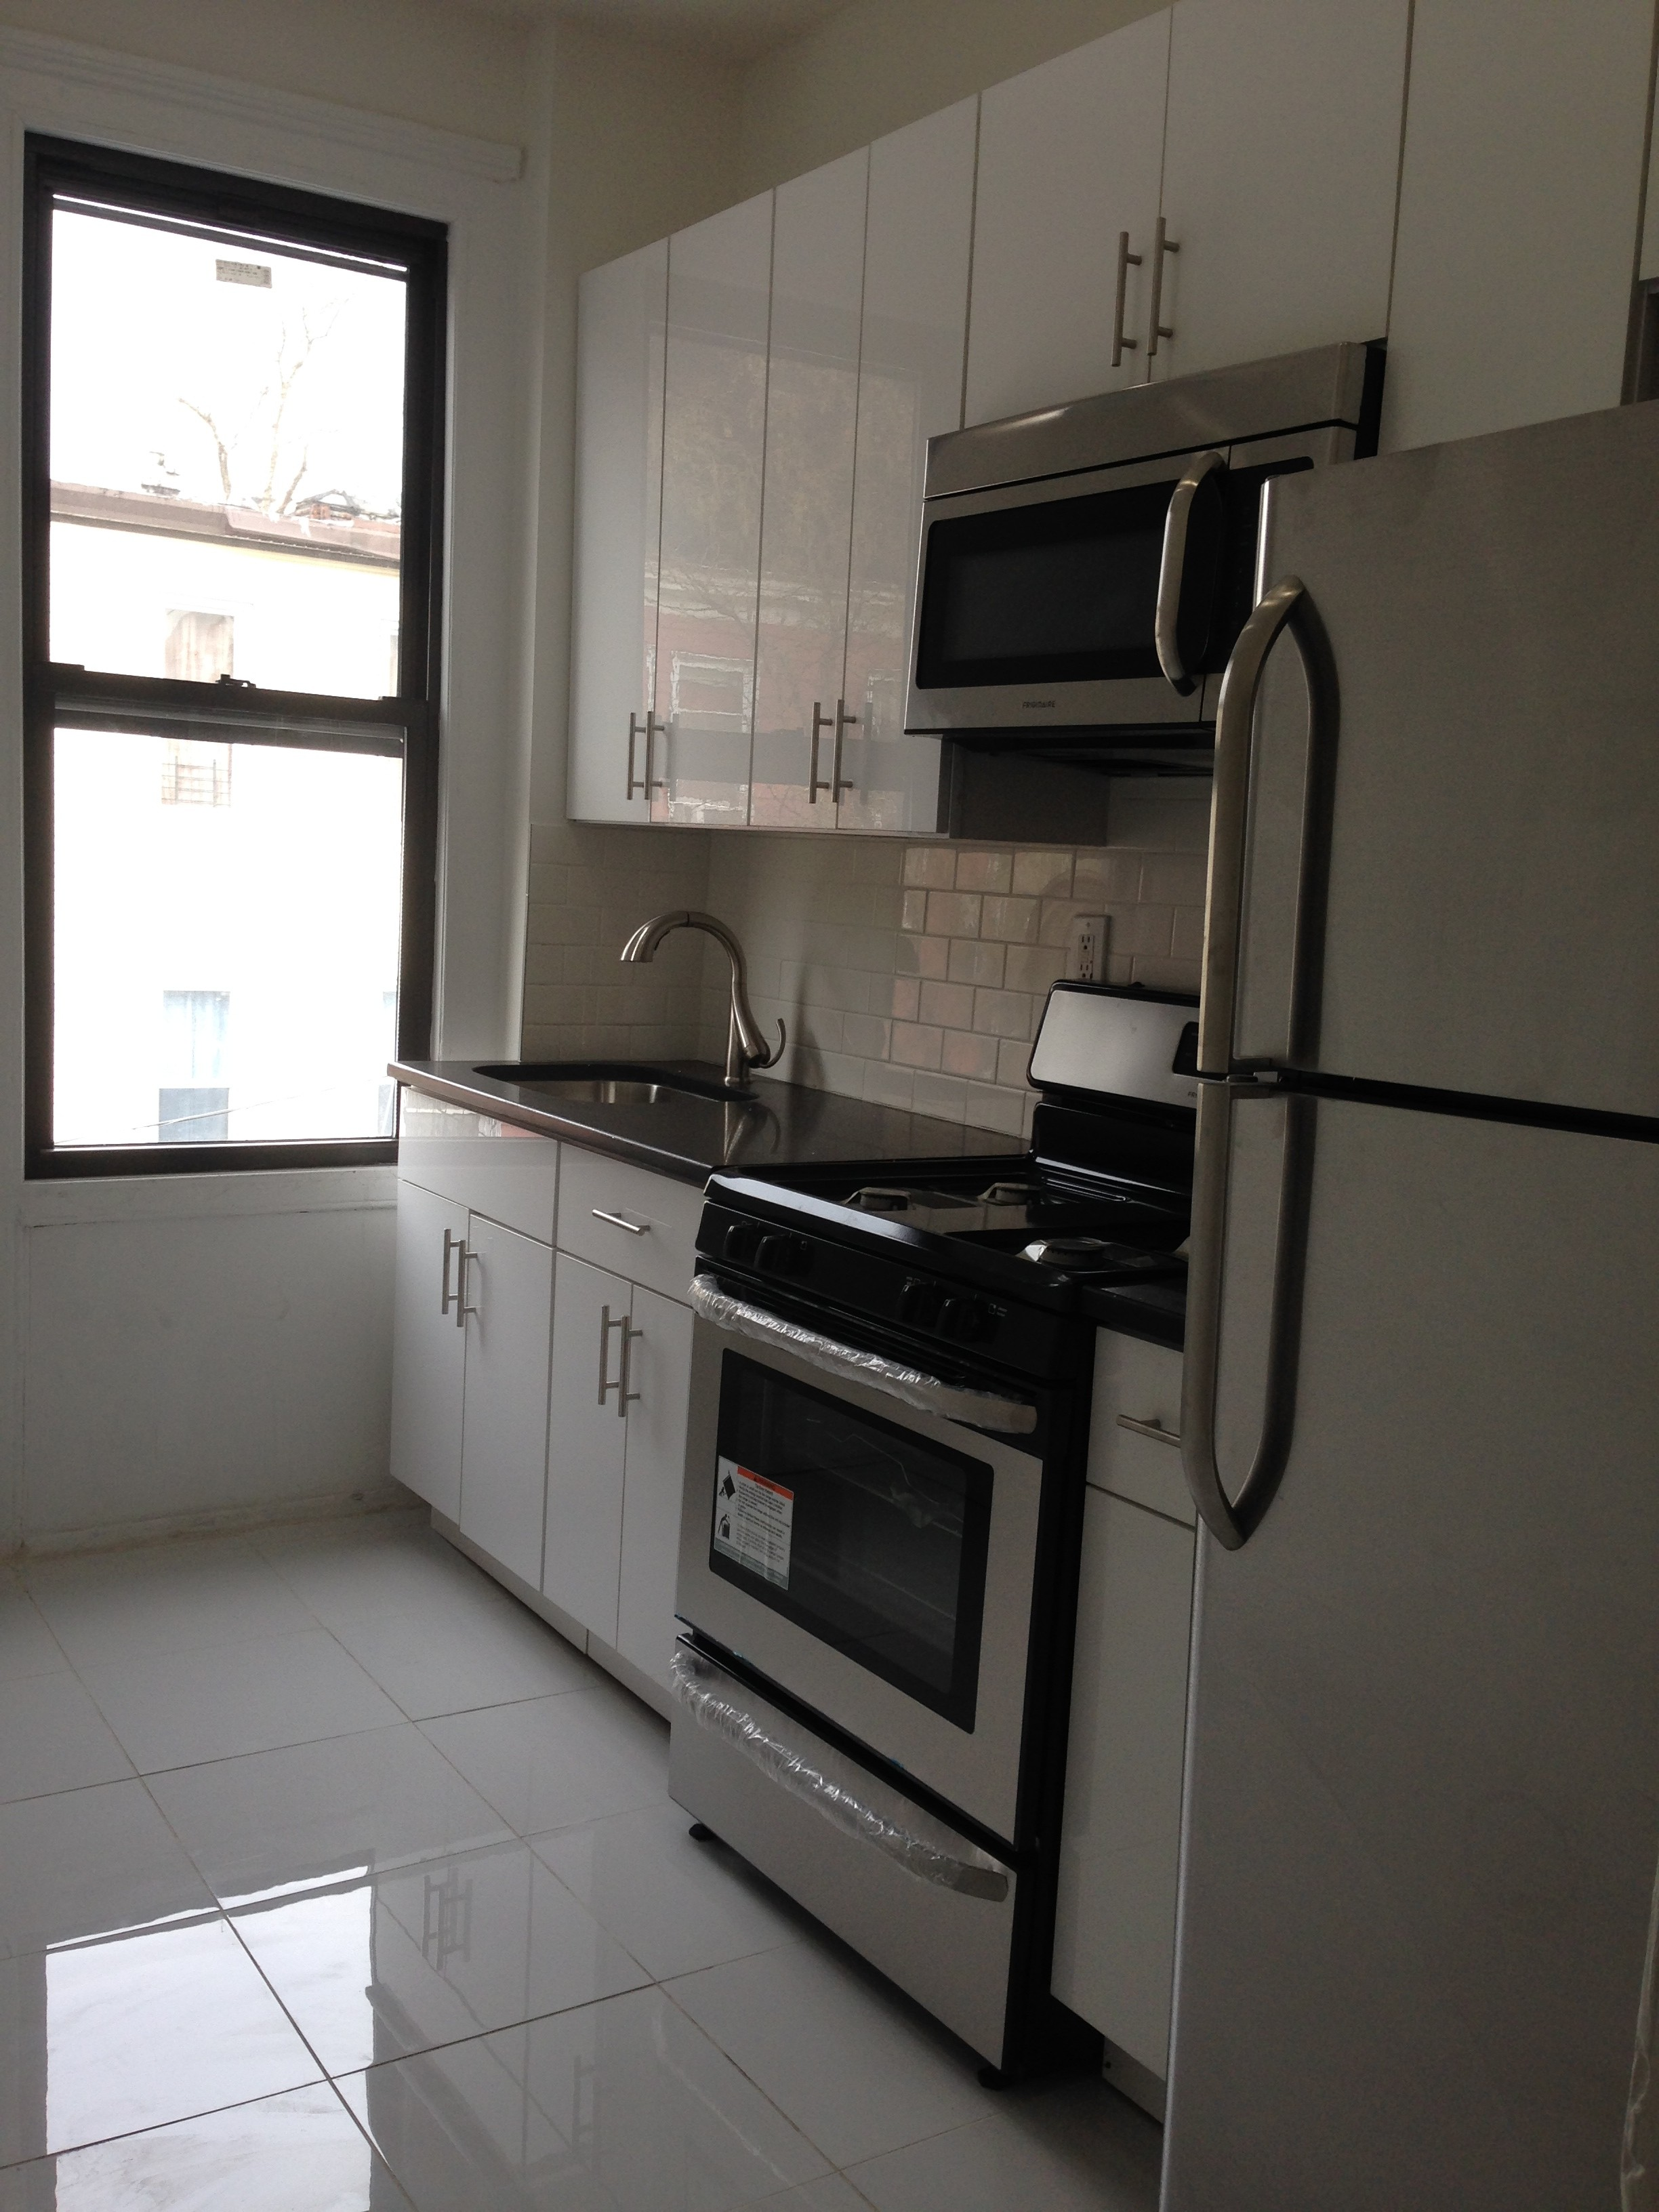 Bushwick Ny Rooms For Rent